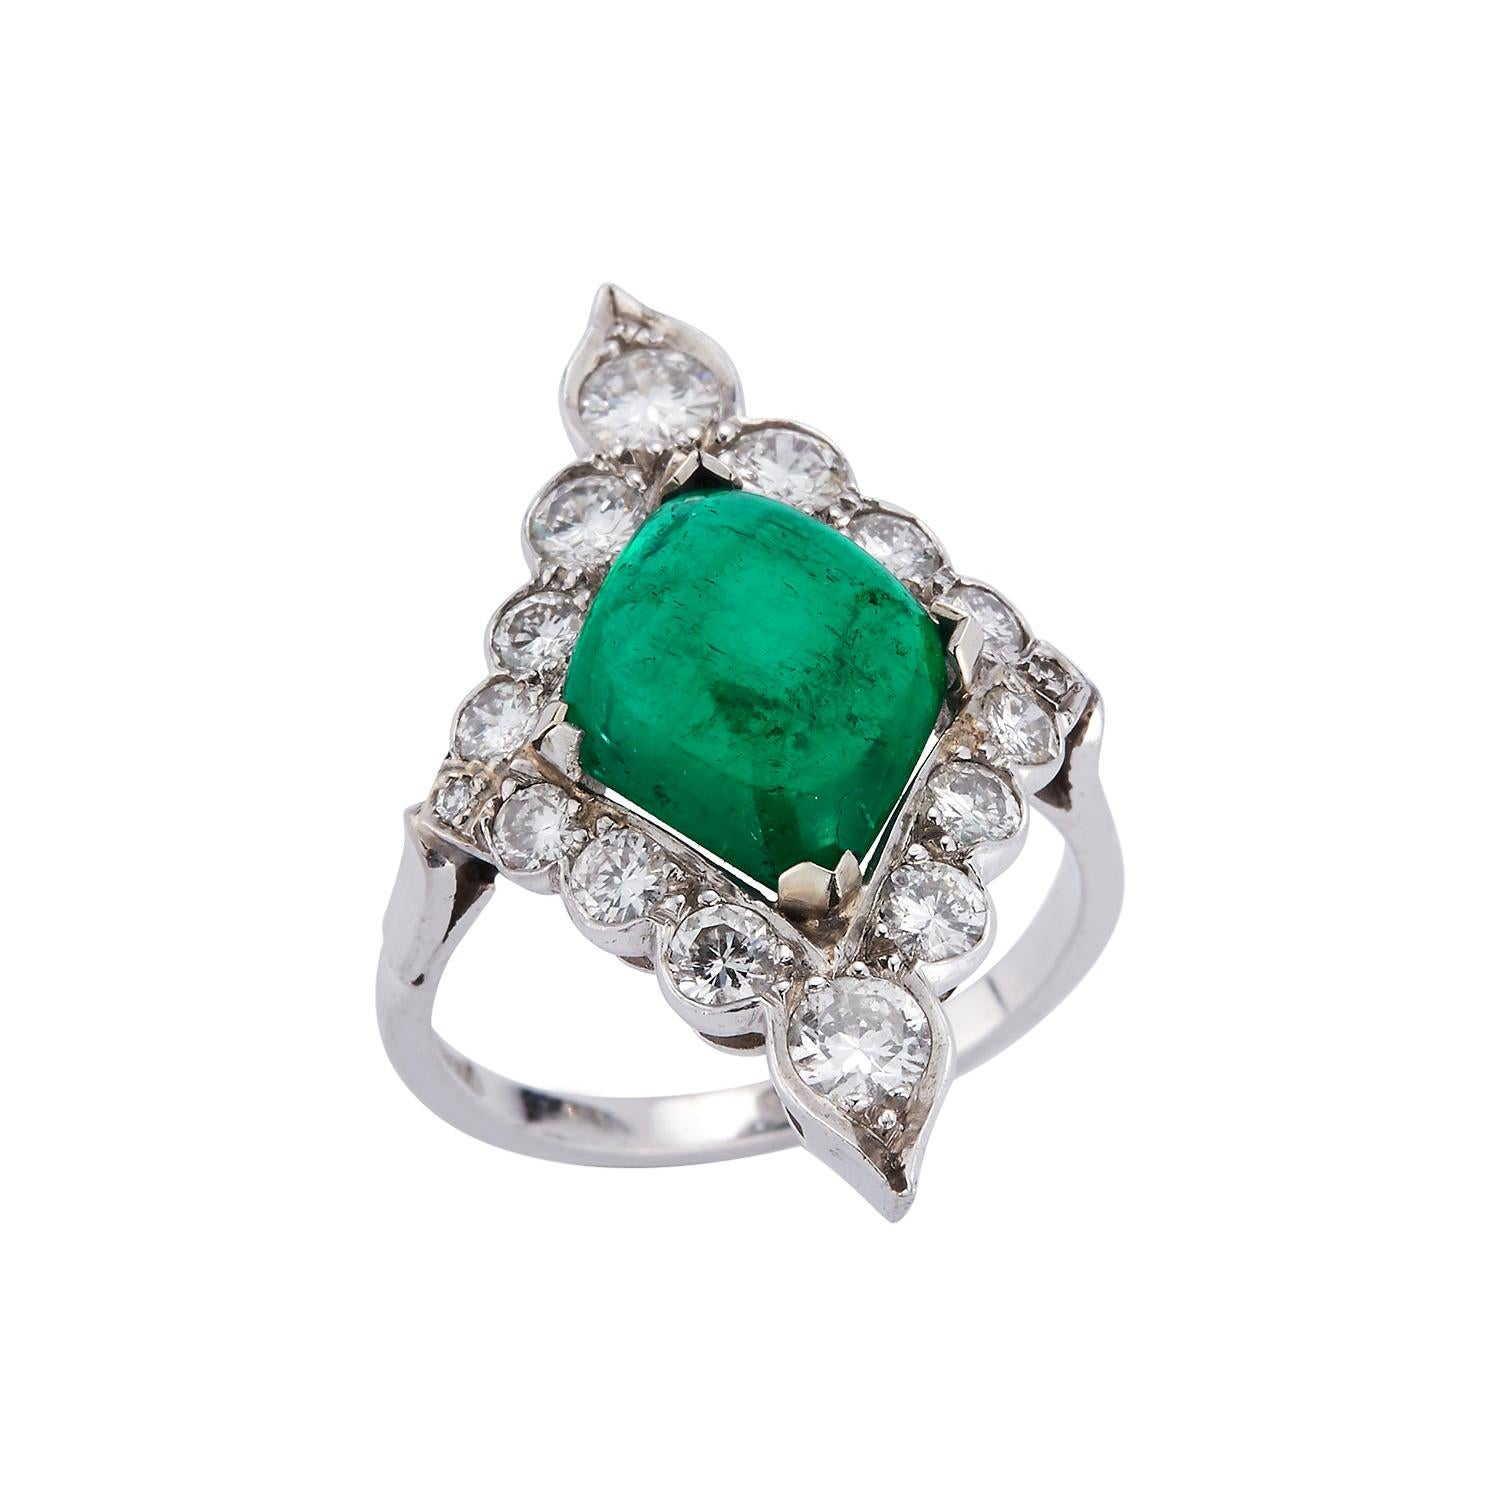 Certified Cabochon Colombian Emerald & Diamond Ring